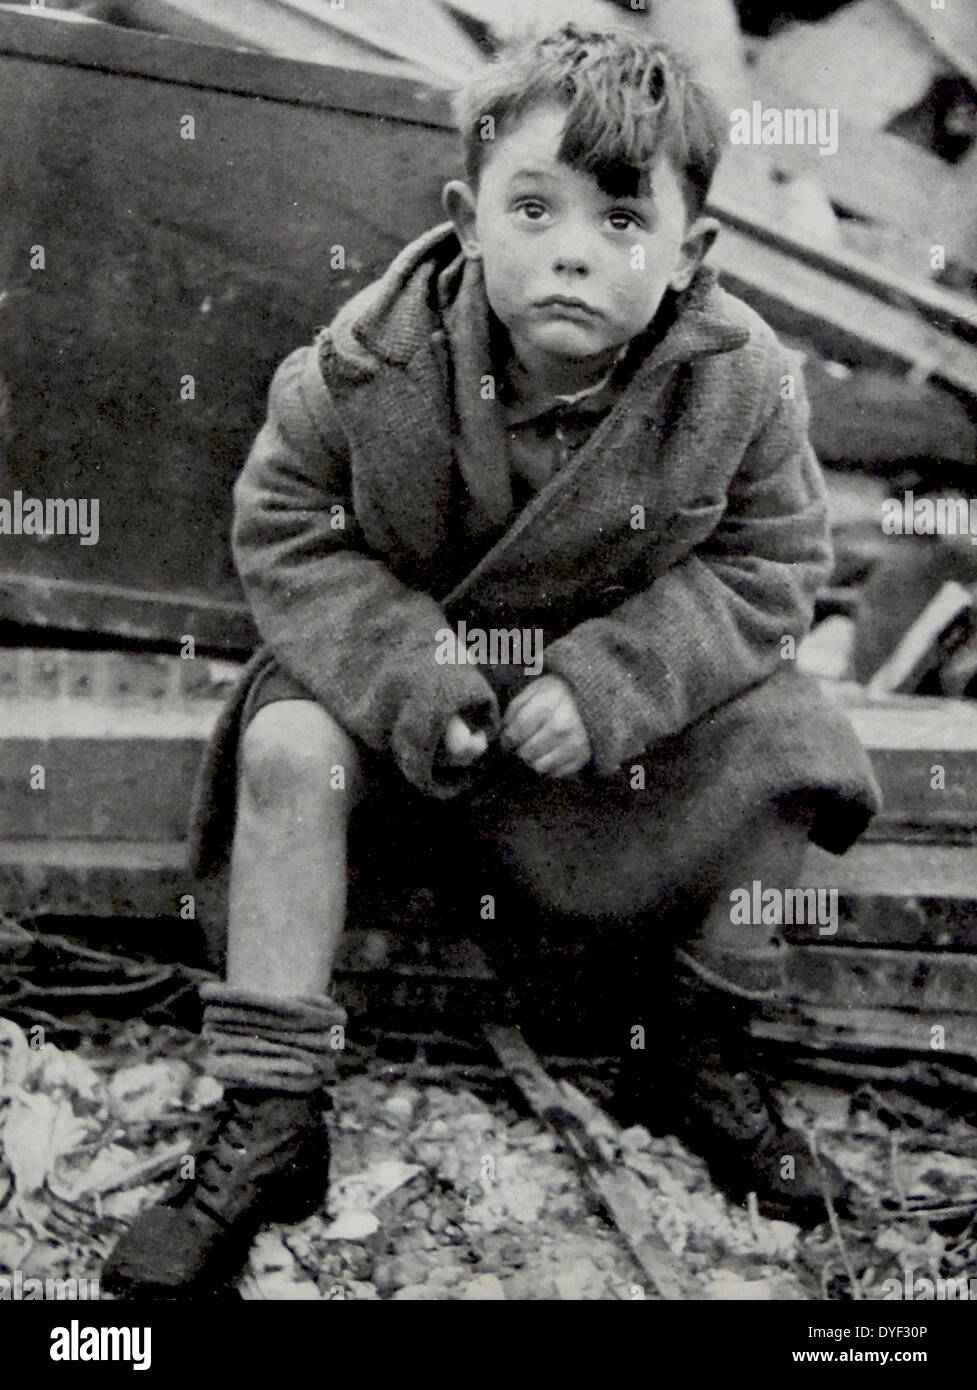 An orphaned child after surviving the Blitz on London. Stock Photo